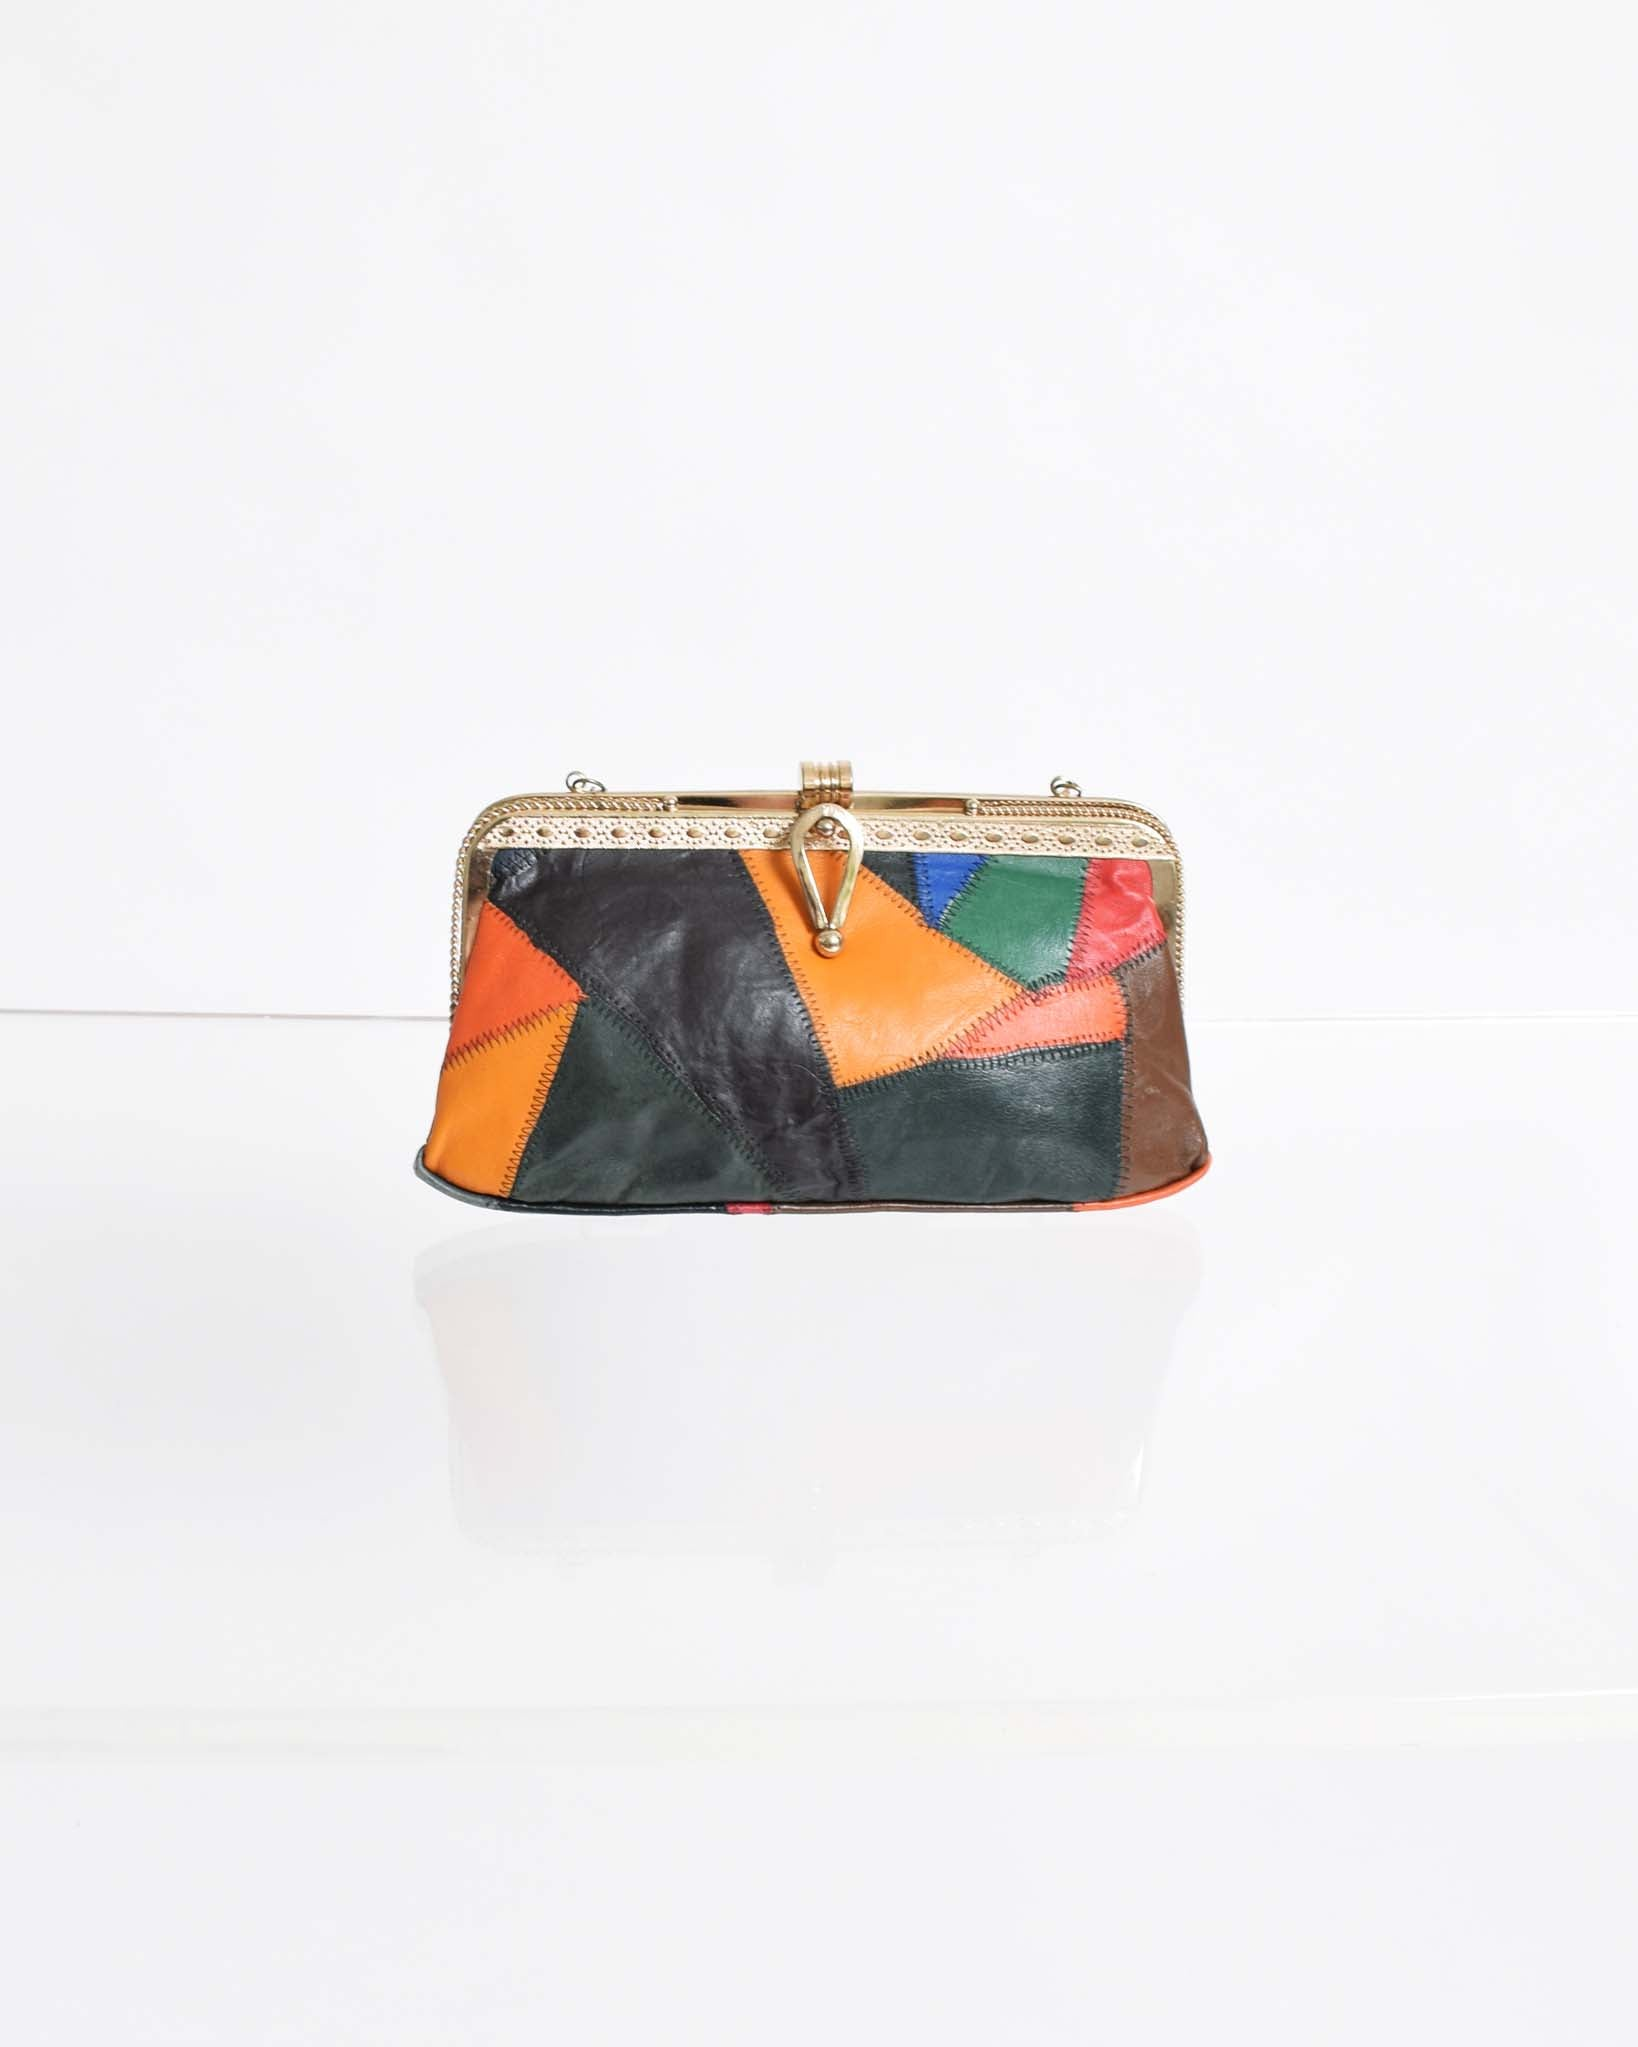 Vintage 1970s Patchwork Purse